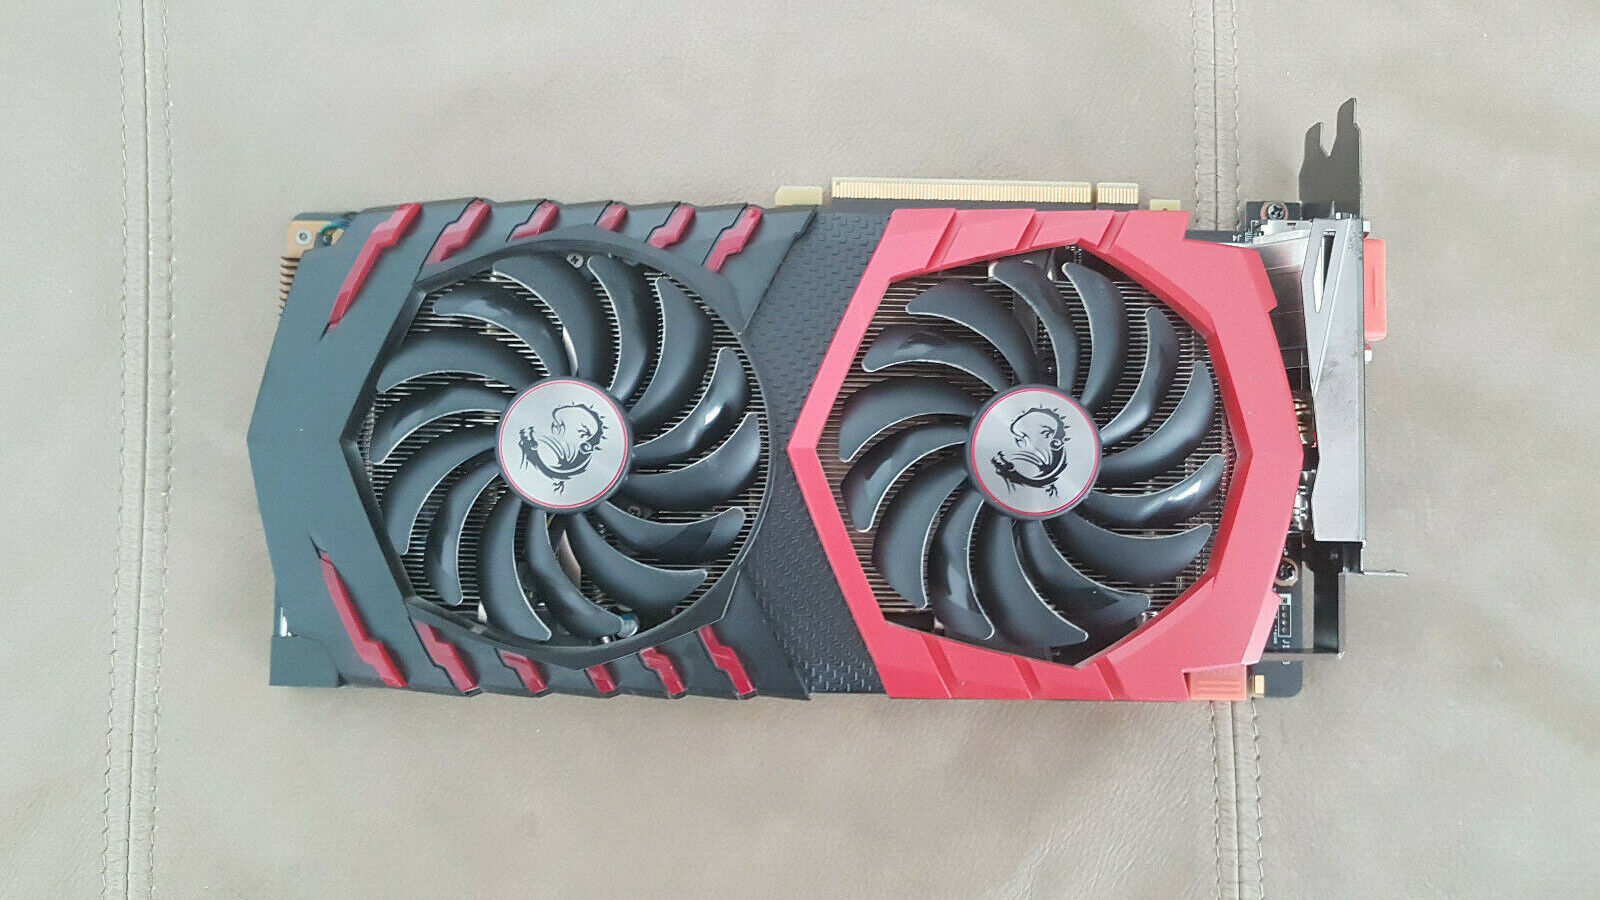 Msi nvidia geforce gtx 1080 8 go gddr5x carte graphique (gtx 1080 gaming x 8g)